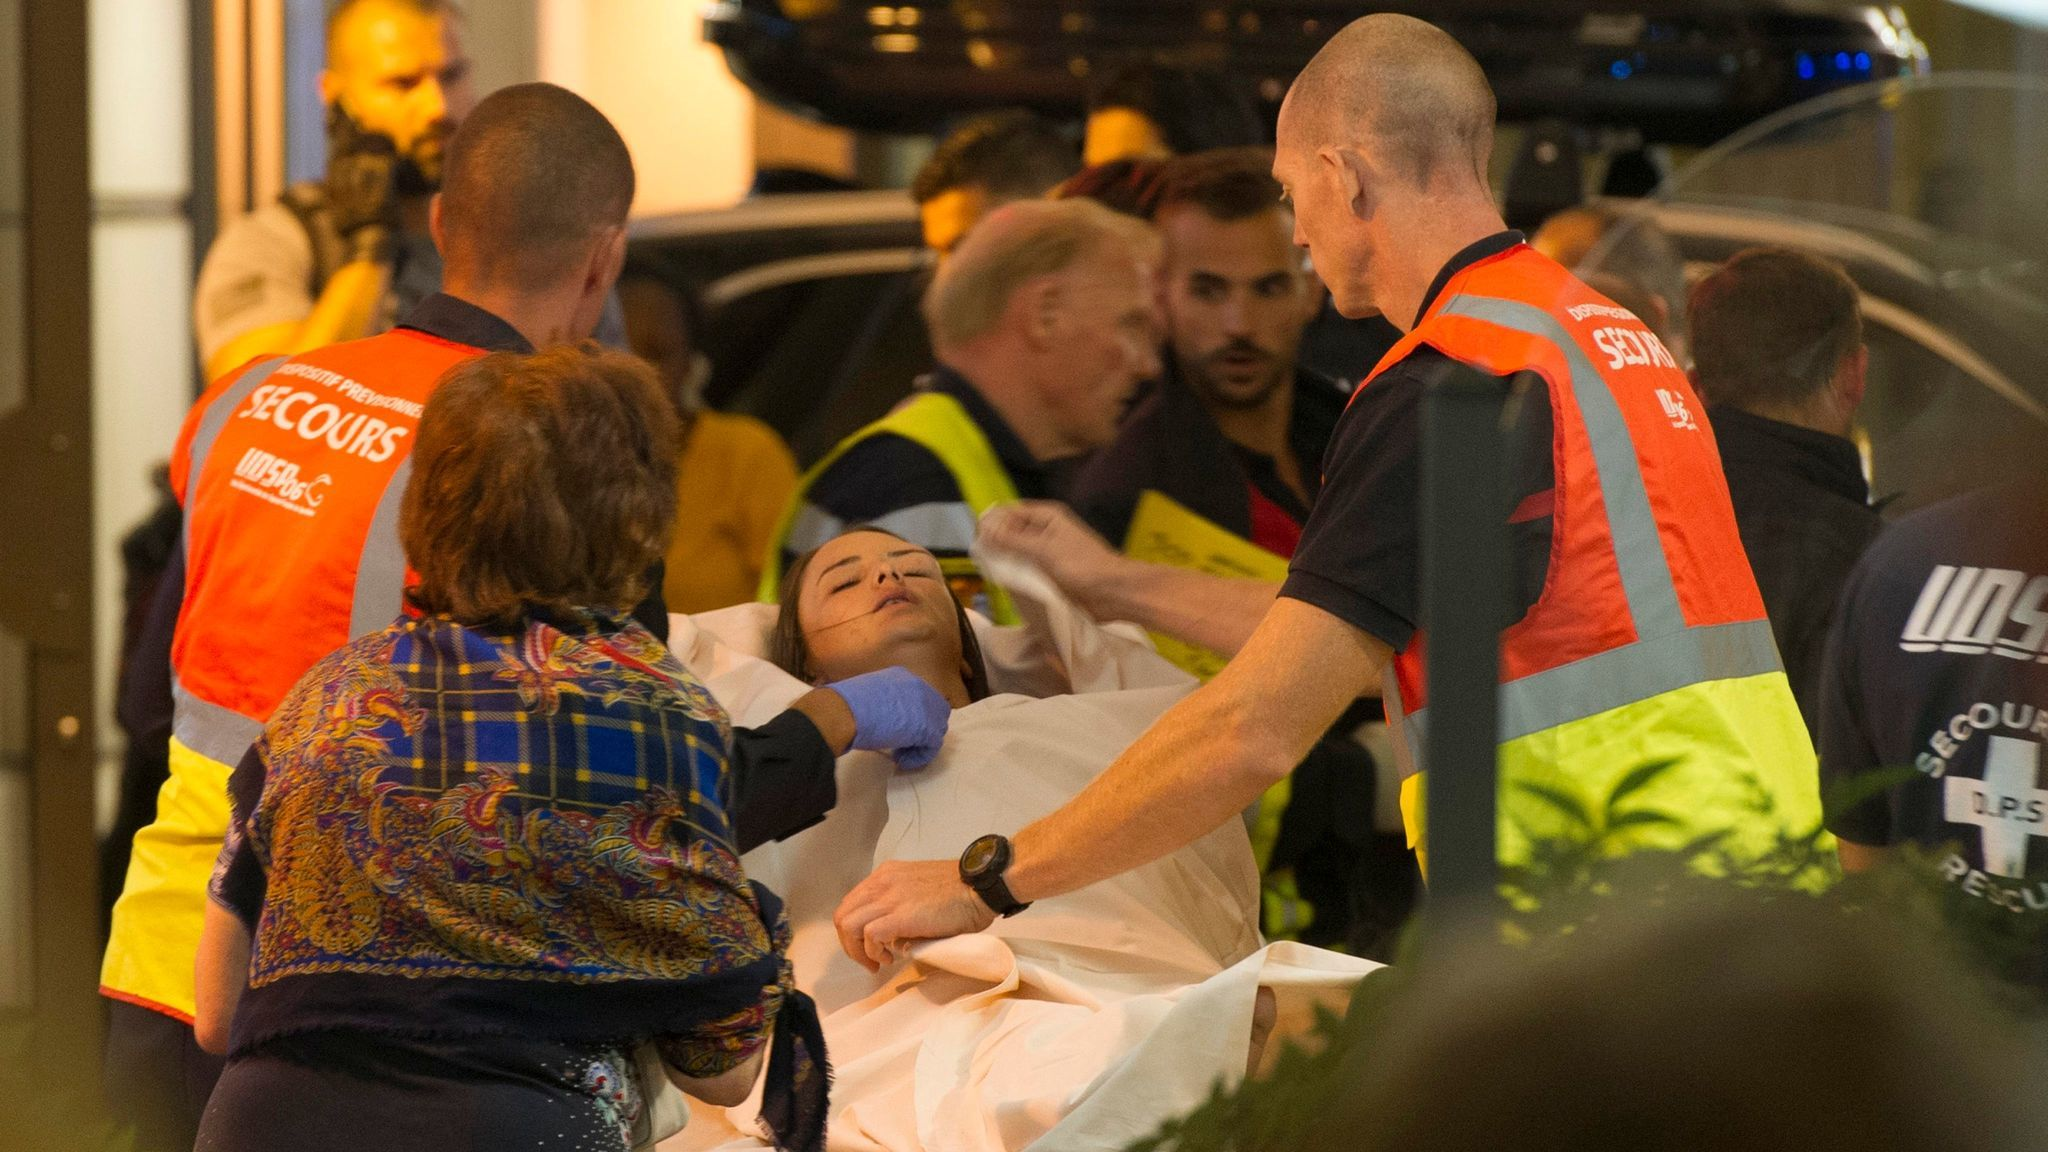 Wounded bystanders are evacuated after a truck crashed into the crowd during Bastille Day celebrations in Nice, France, on July 14, 2016.